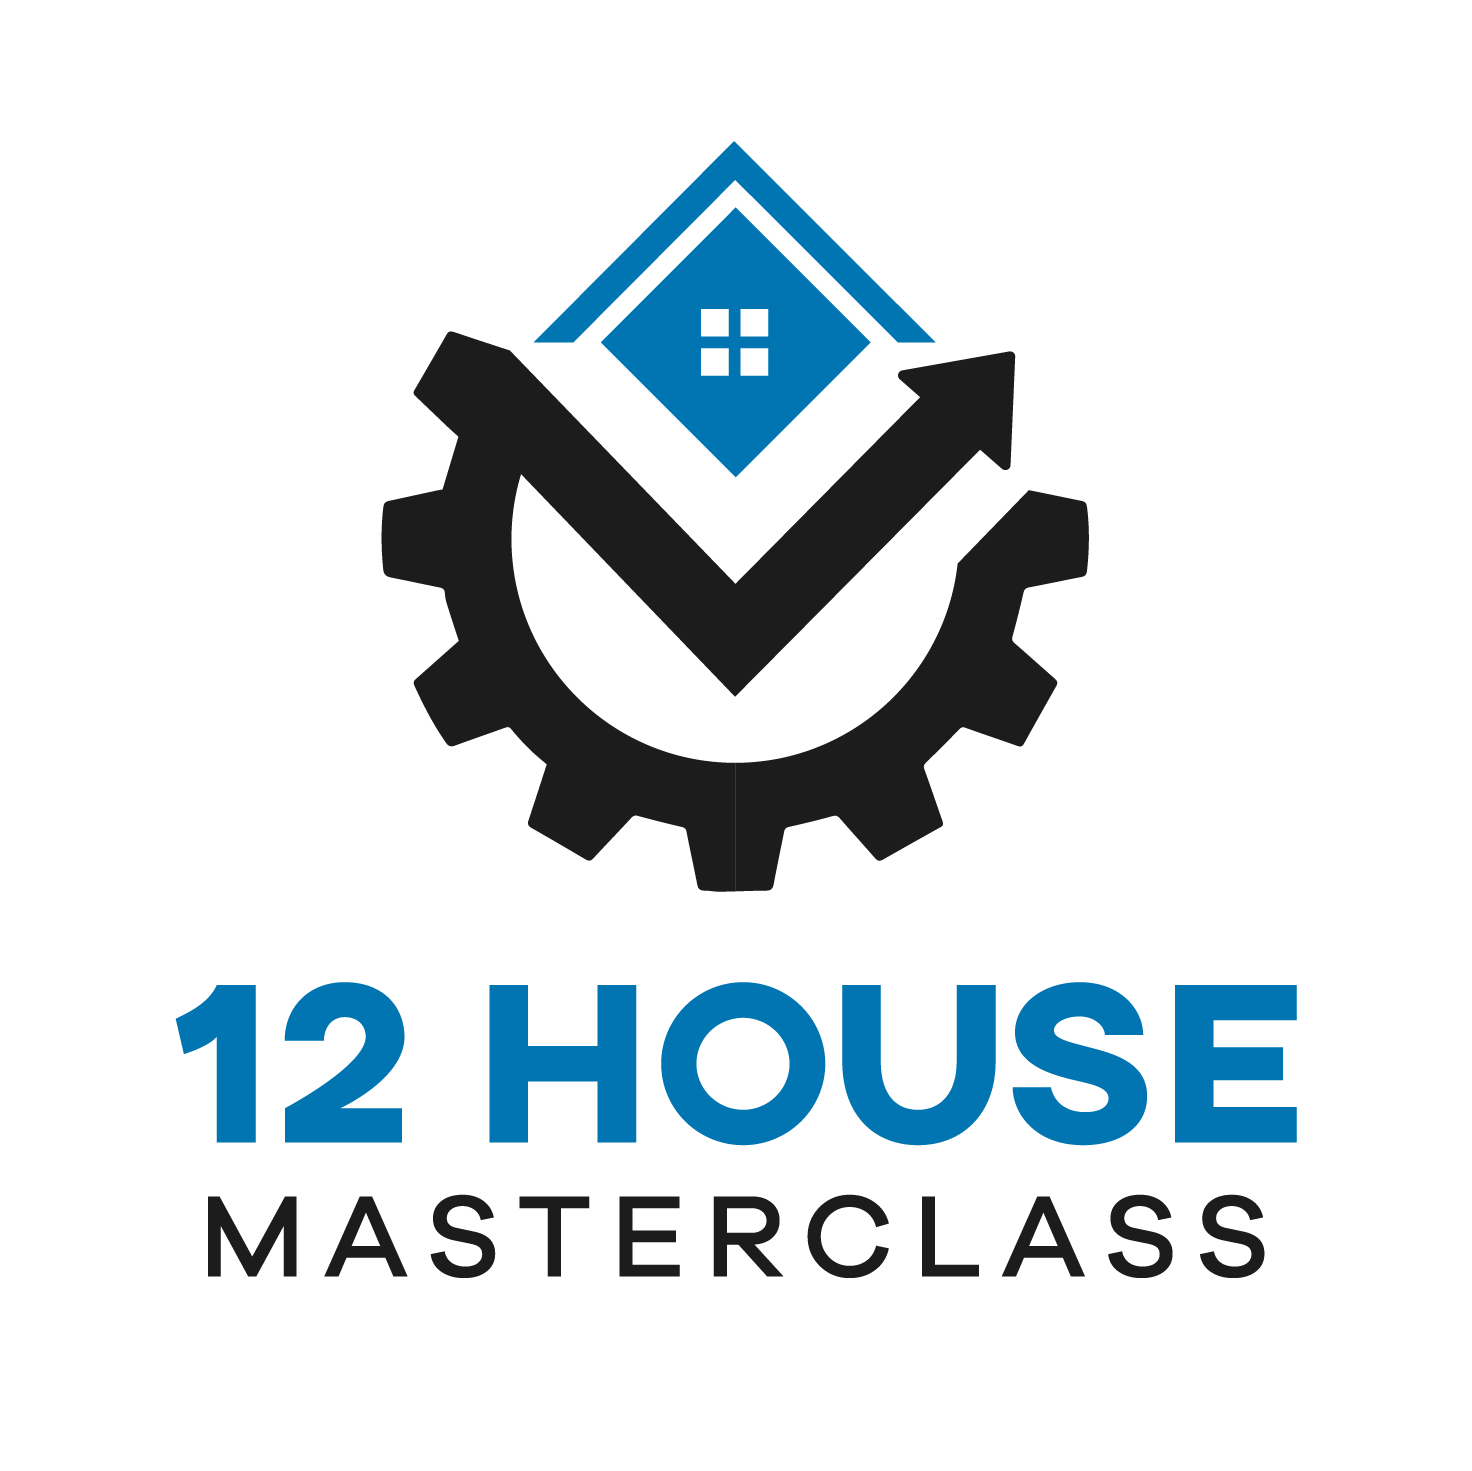 12_House_Masterclass_Vertical (2) (1).png